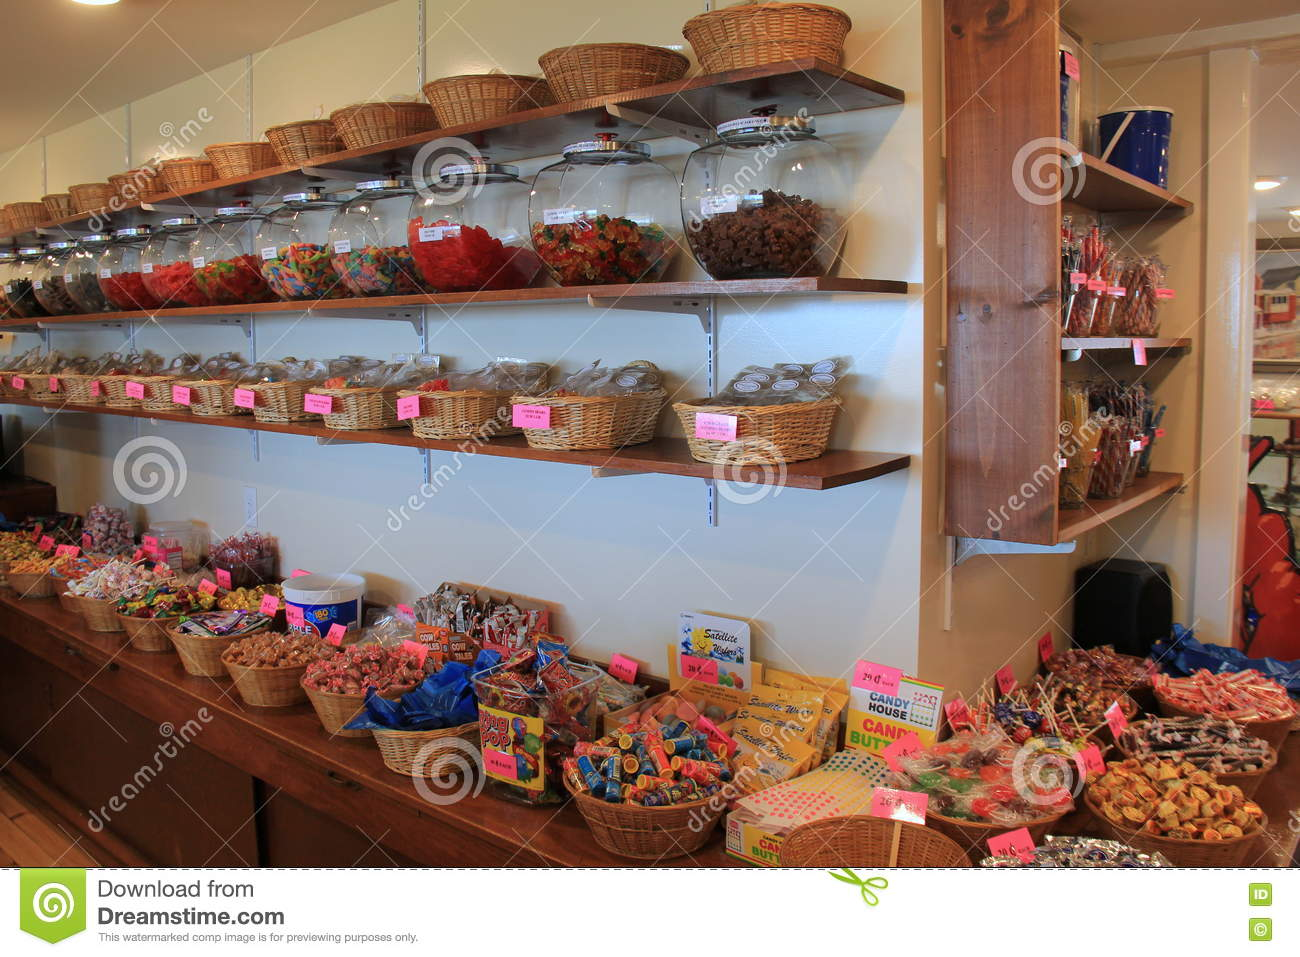 Several Wood Baskets Filled With Flavors Of Salt Water Taffy